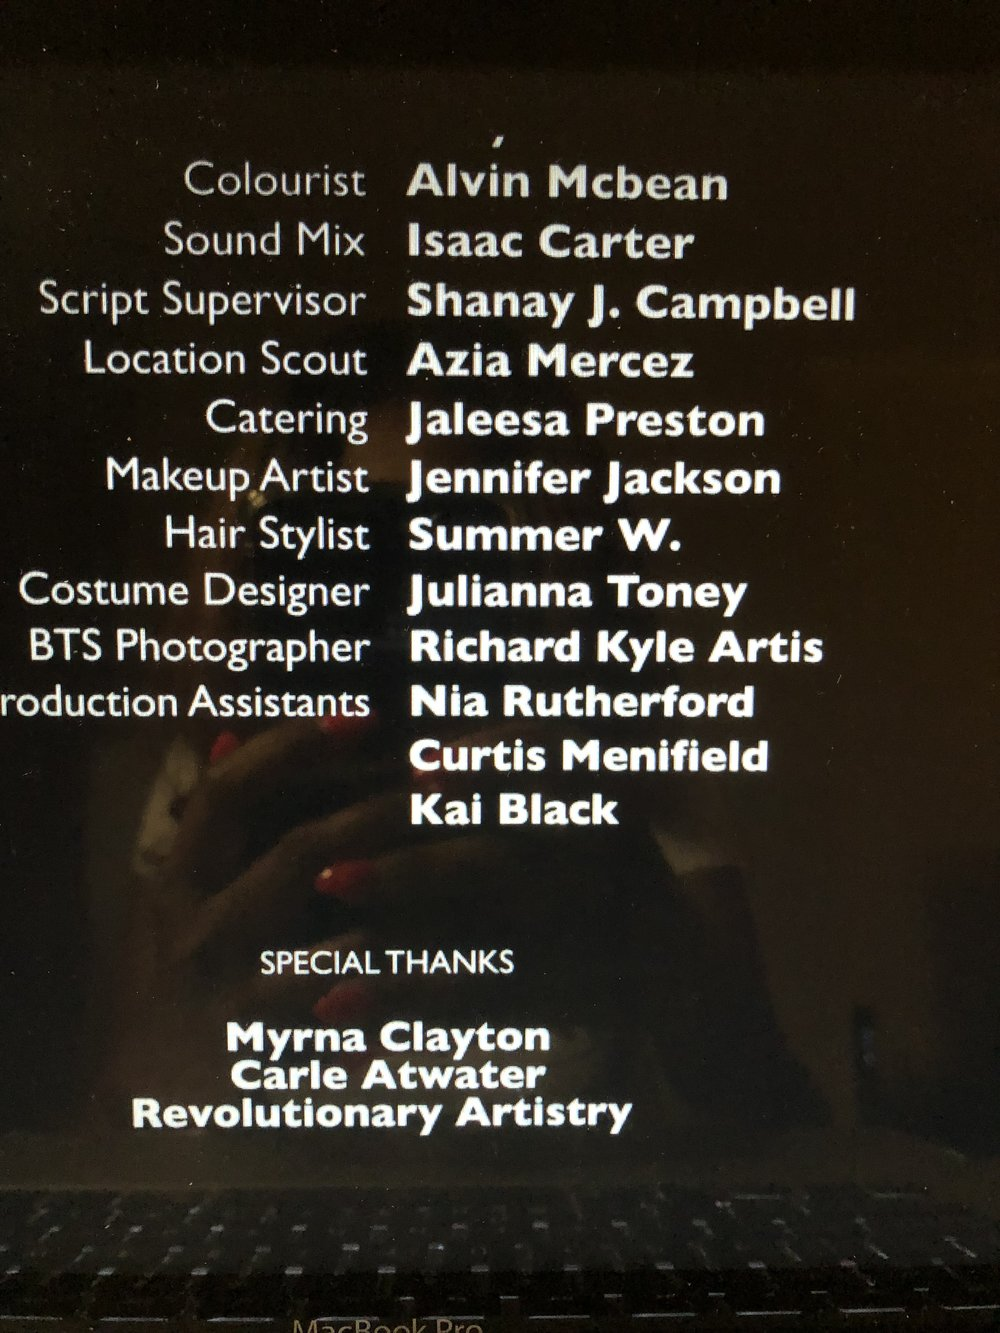 It is an amazing feeling to see your name on the credits.